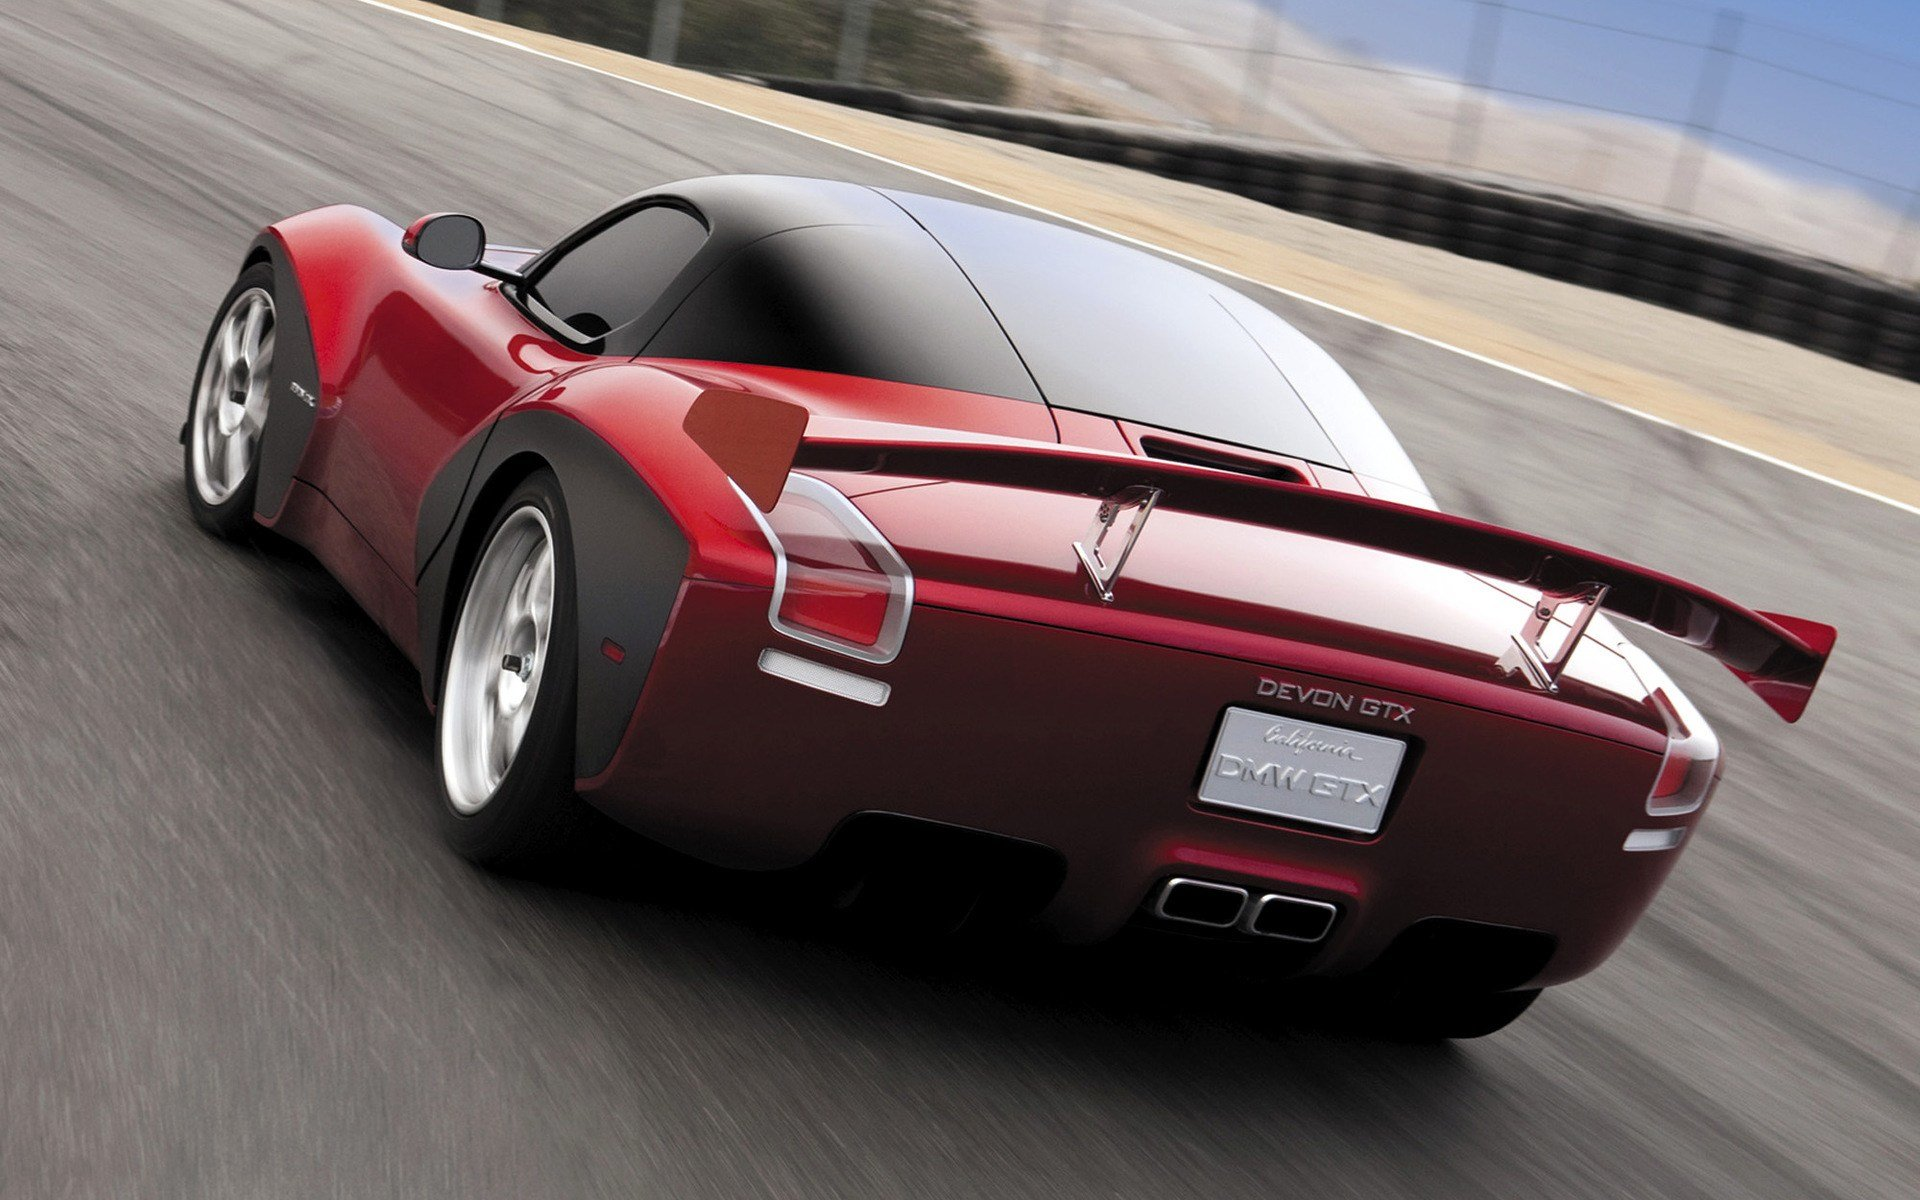 New 2009 Devon Gtx Wallpapers And Hd Images Car Pixel On This Month